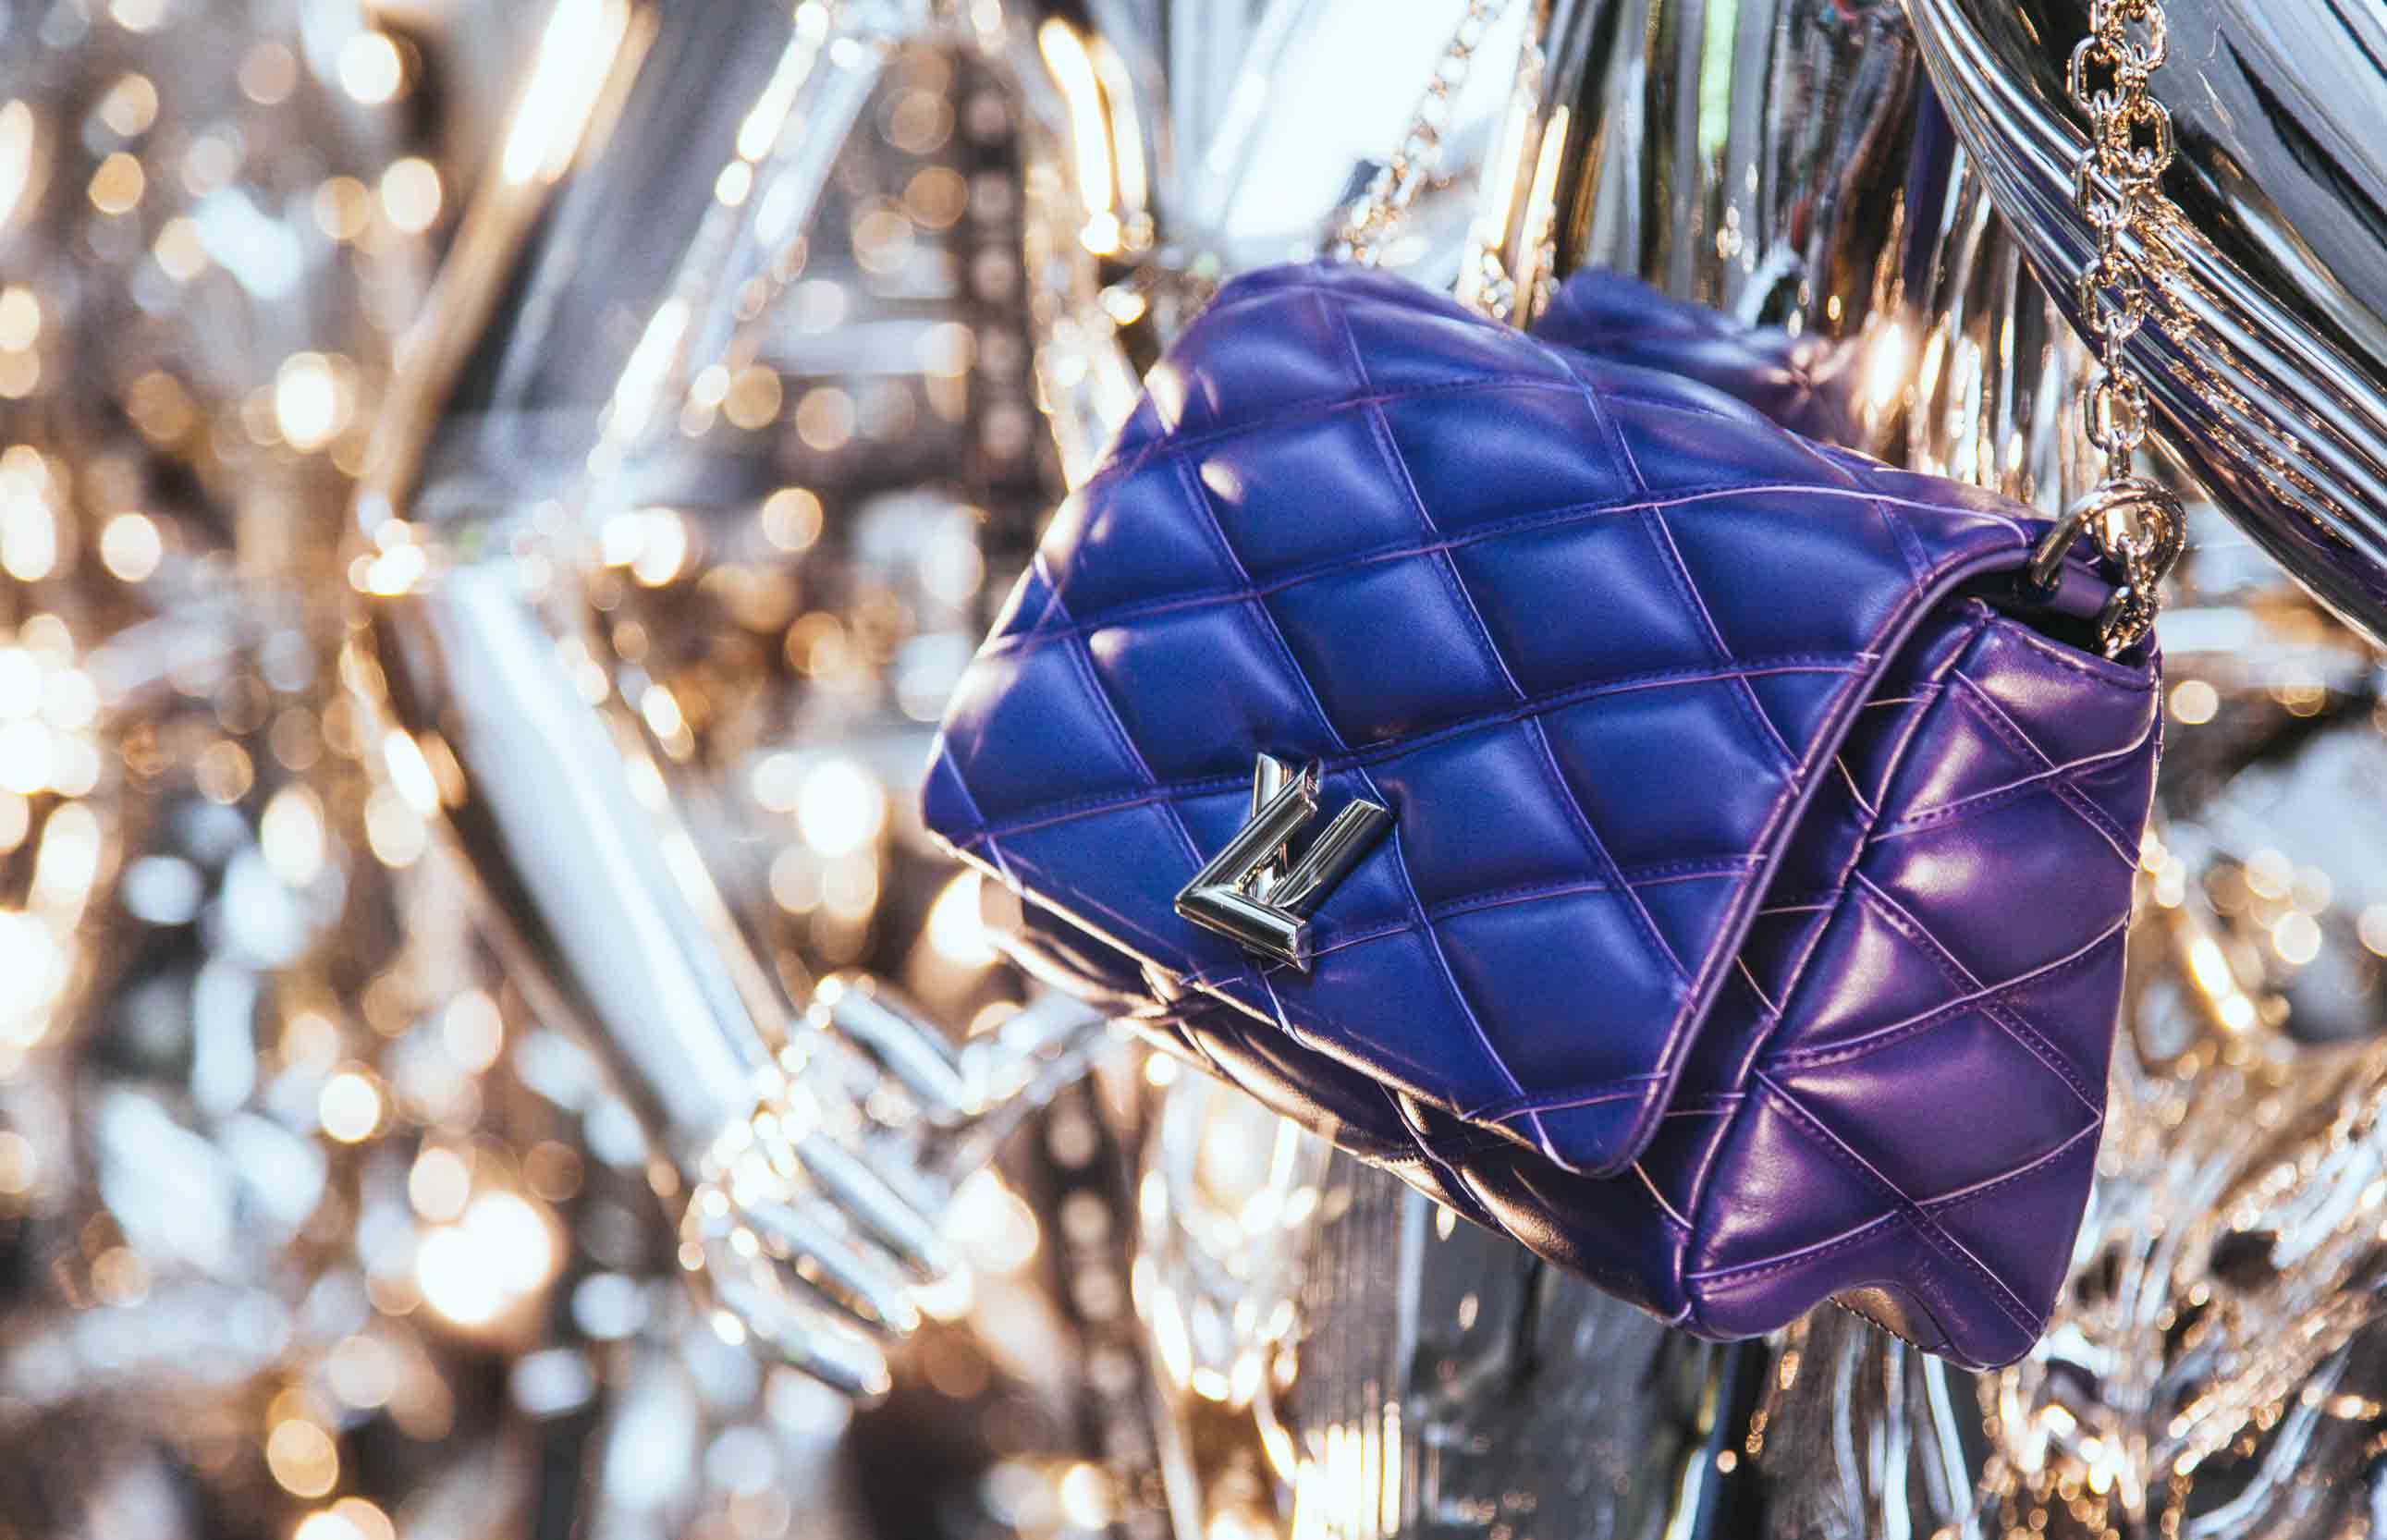 It can be hard to save at Louis Vuitton, but if you're careful, there are ways to save on the luxury retailer's goods.